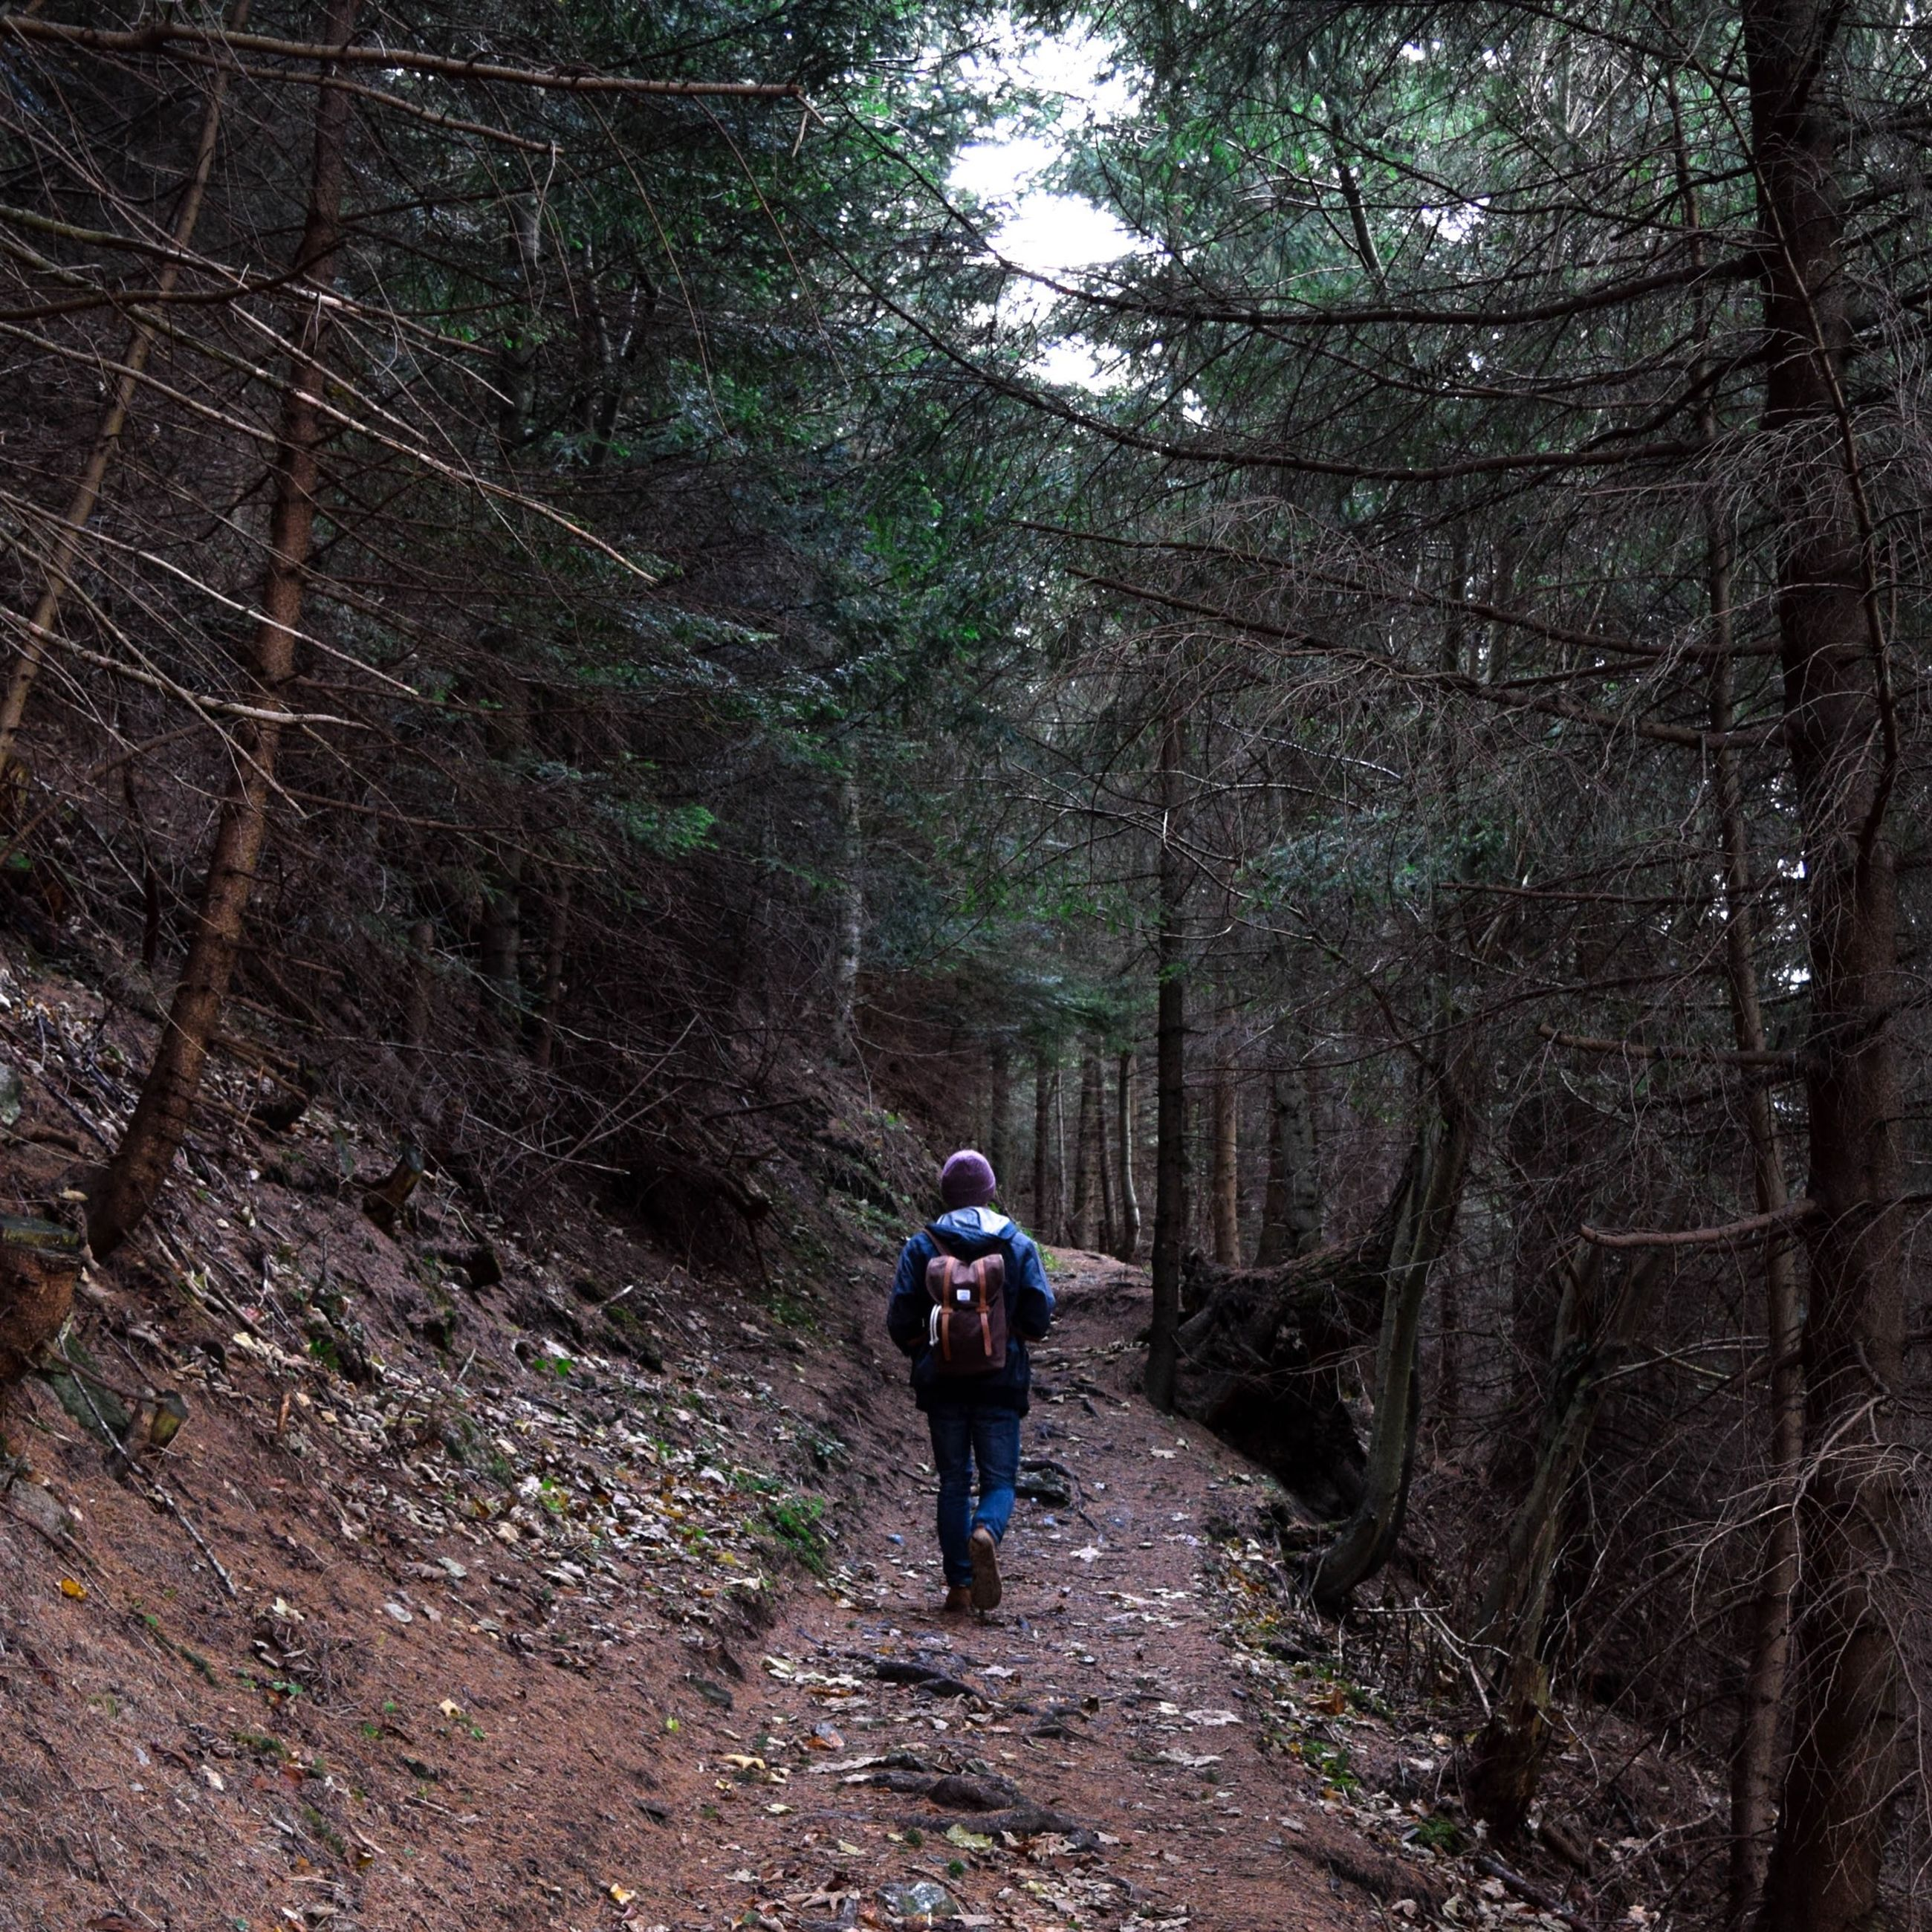 tree, full length, forest, rear view, lifestyles, leisure activity, the way forward, walking, men, hiking, casual clothing, nature, dirt road, tree trunk, tranquility, woodland, backpack, growth